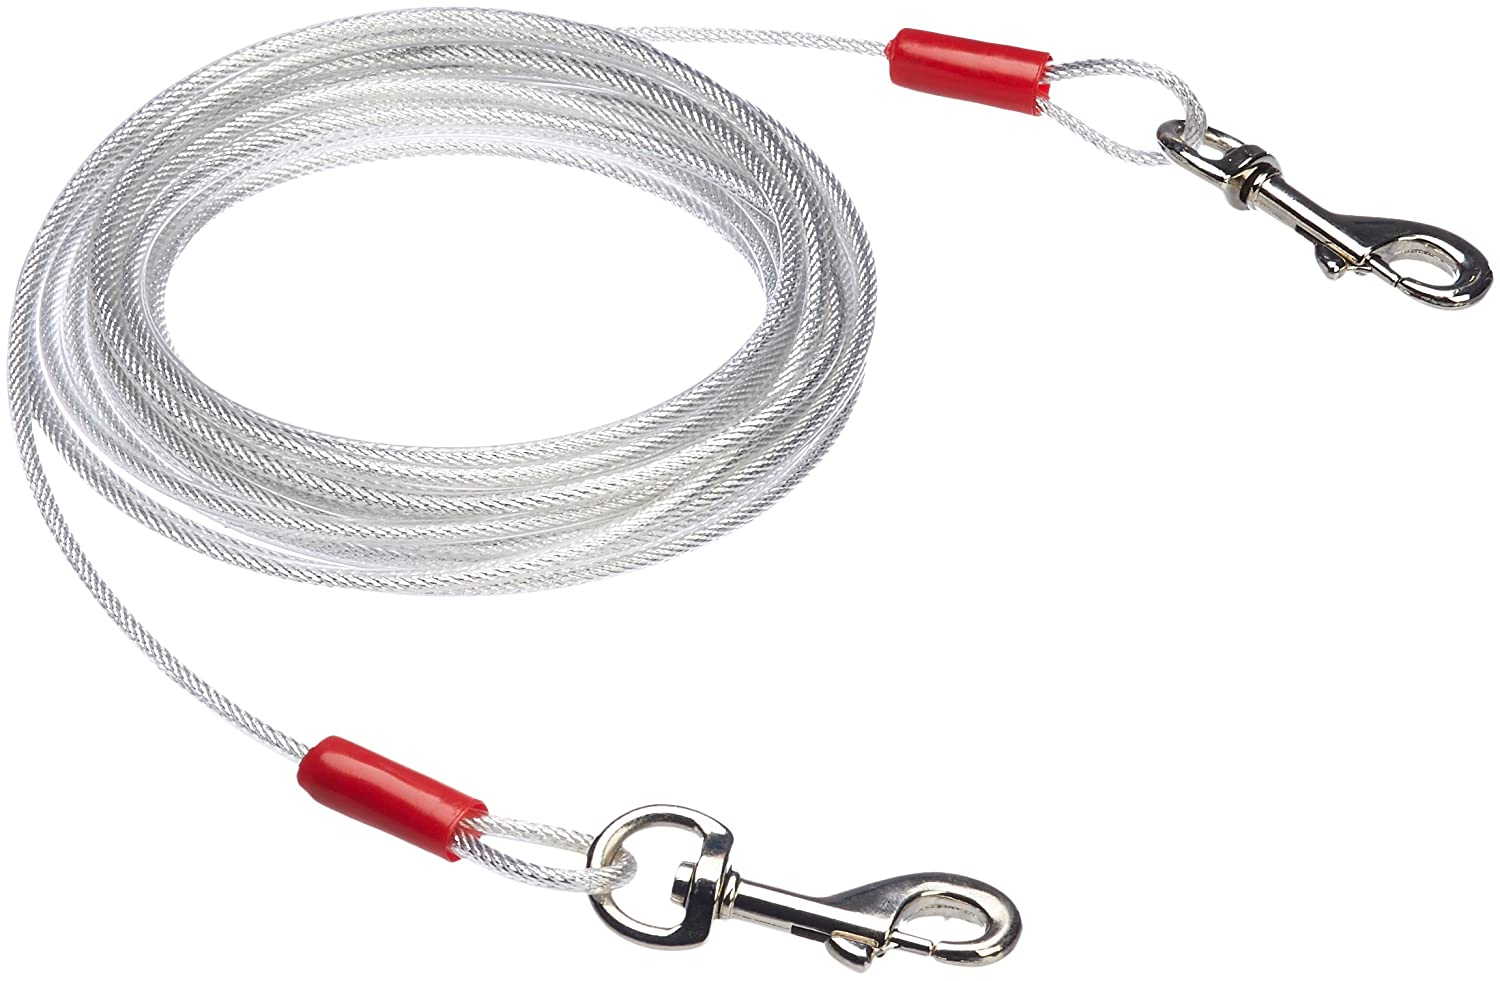 AmazonBasics Tie-Out Cable for Dogs